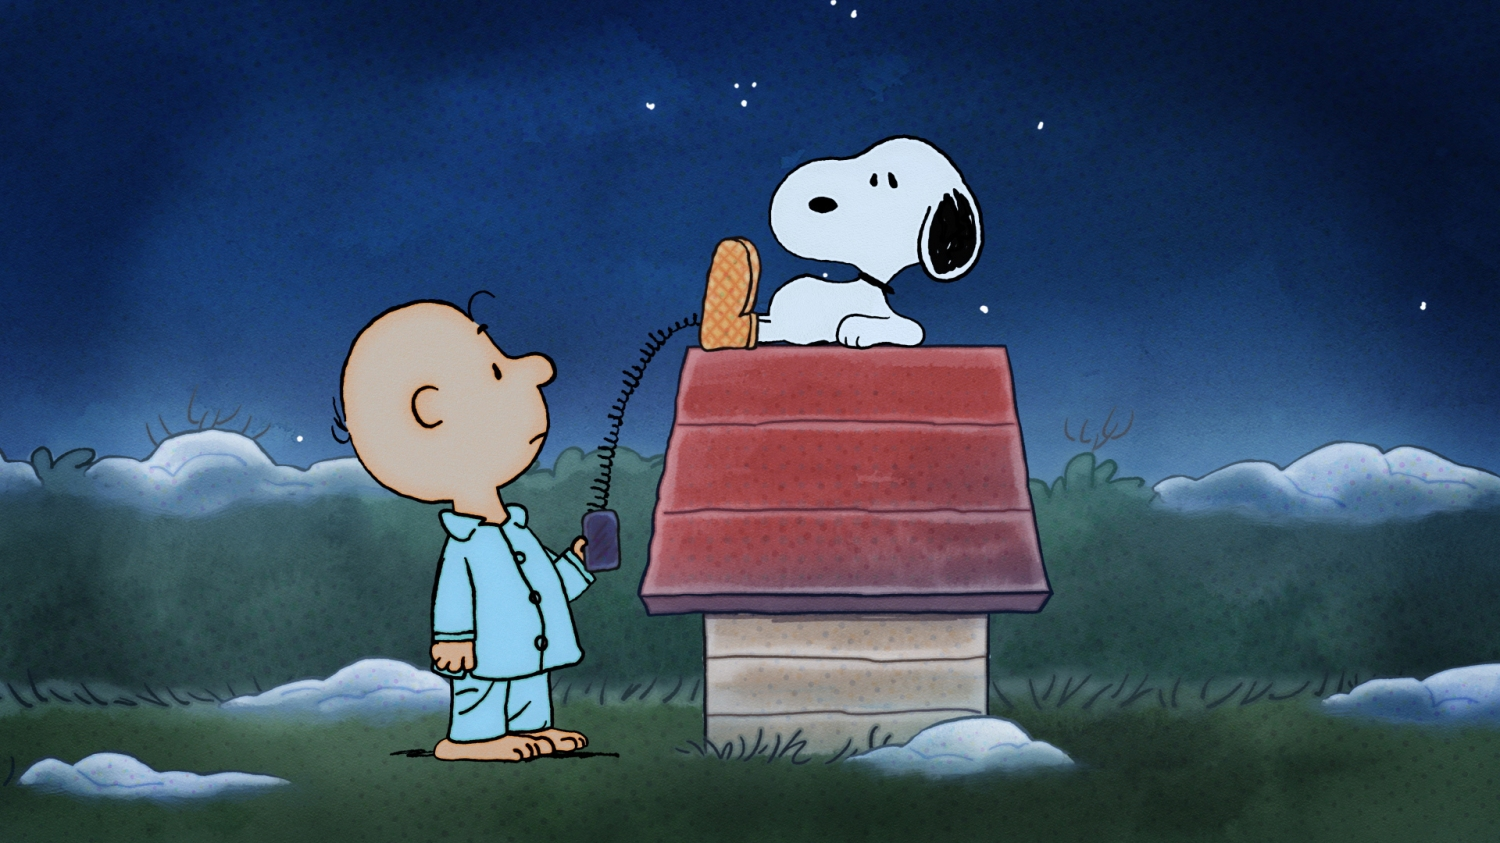 peanuts-snoopy-charlie-brown-amazon